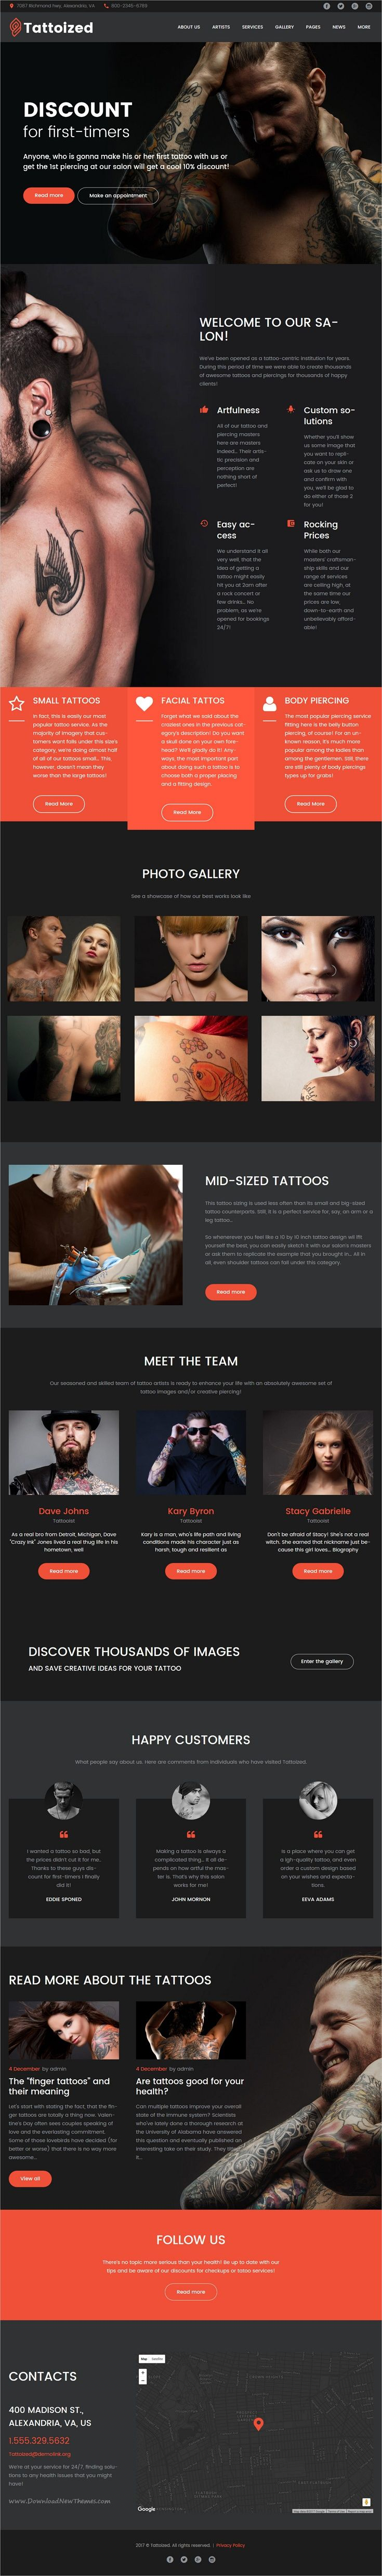 Tottoized is a wonderful responsive #WordPress theme for body art, #piercing and #tattoo salons website download now➩ https://themeforest.net/item/tattoized-tattoo-salon-wordpress-theme/19635394?ref=Datasata